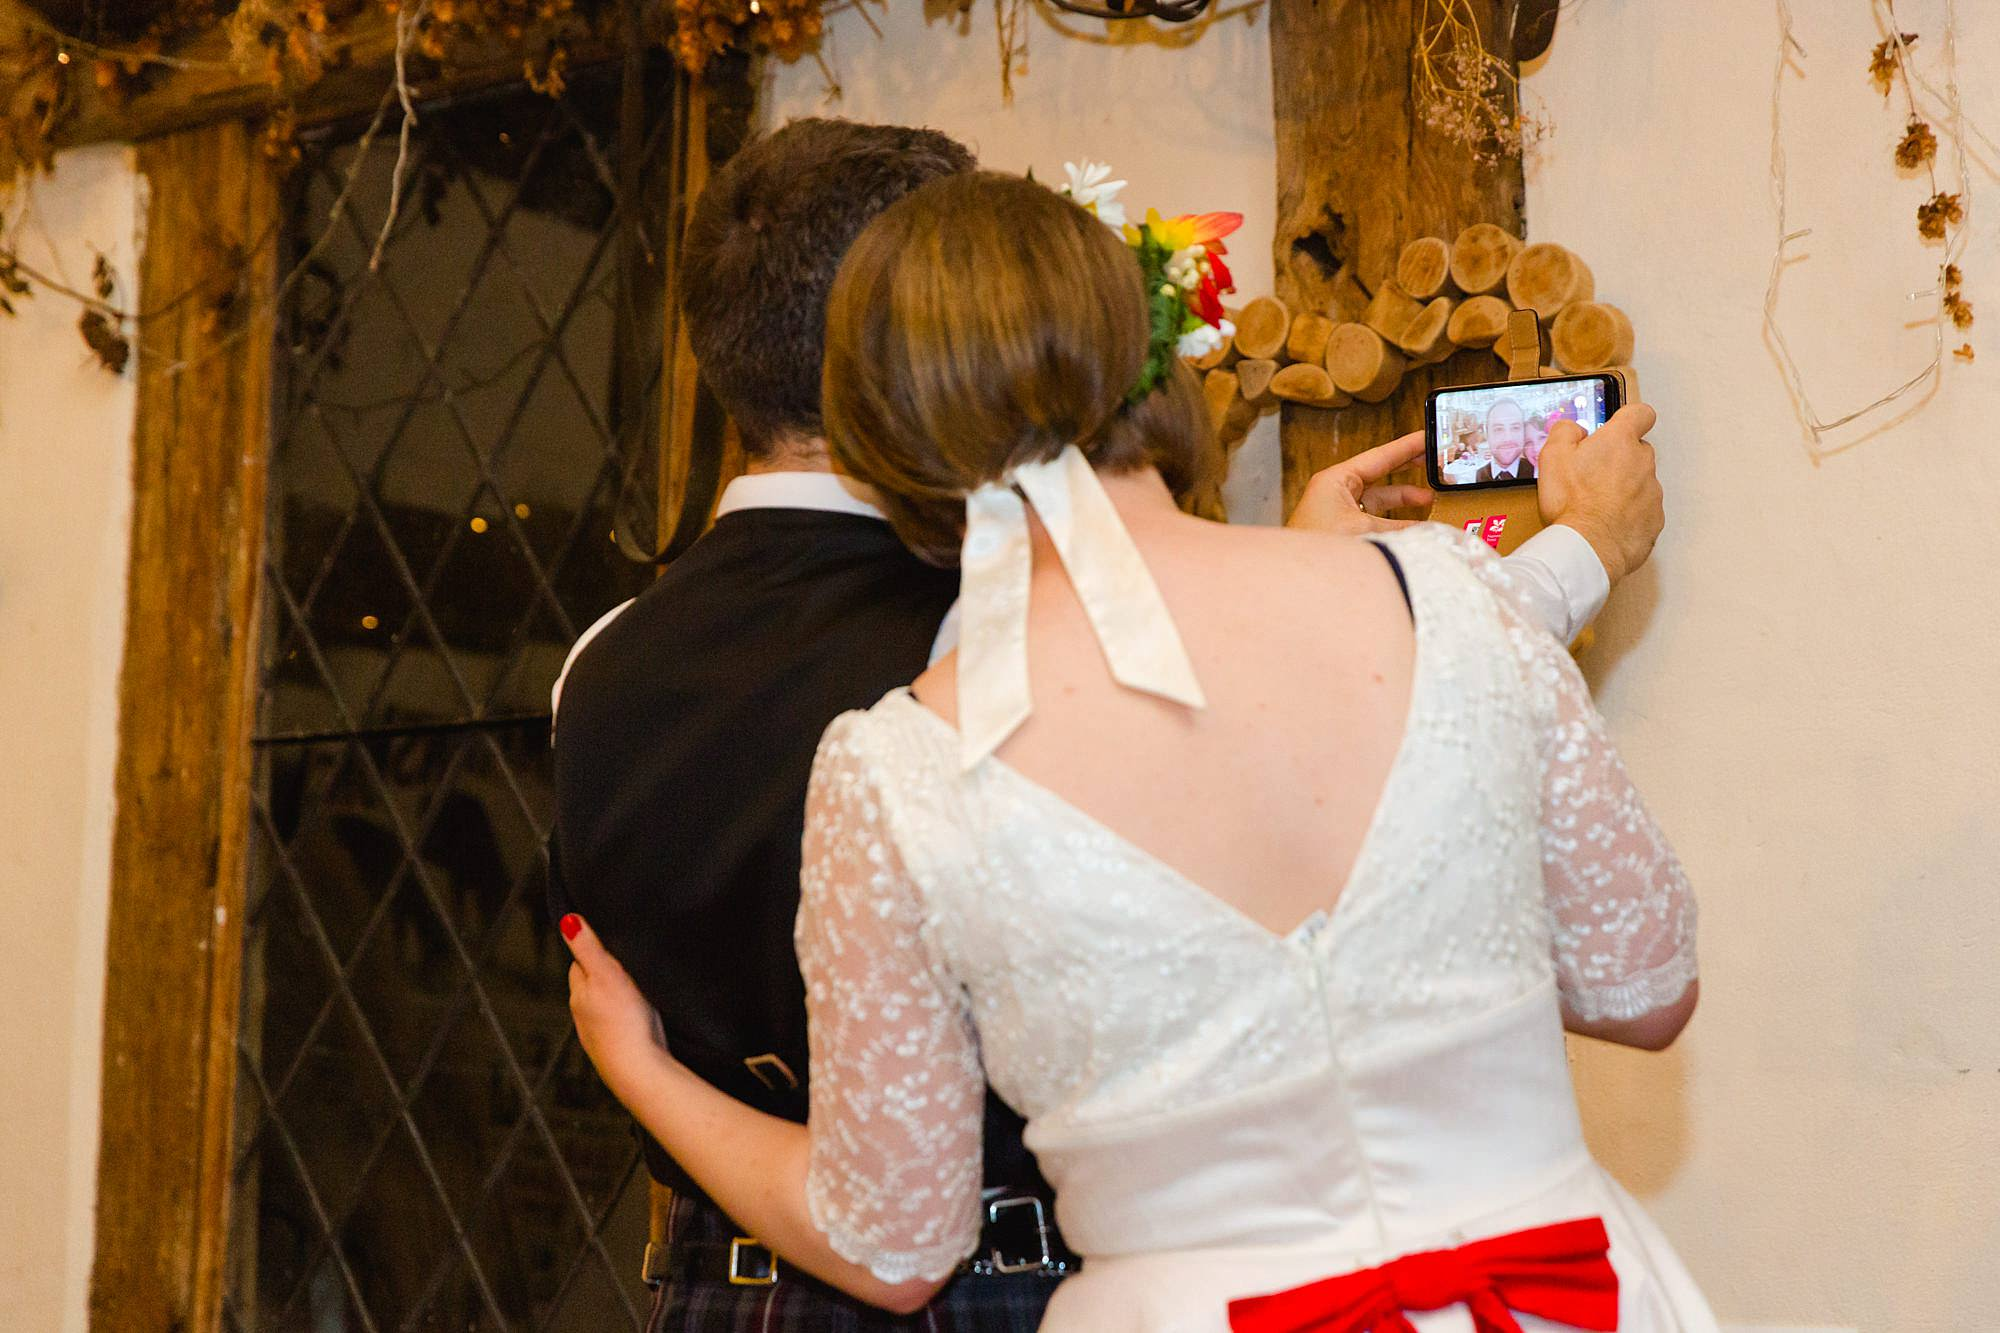 bride and groom take a selfie together at their wedding